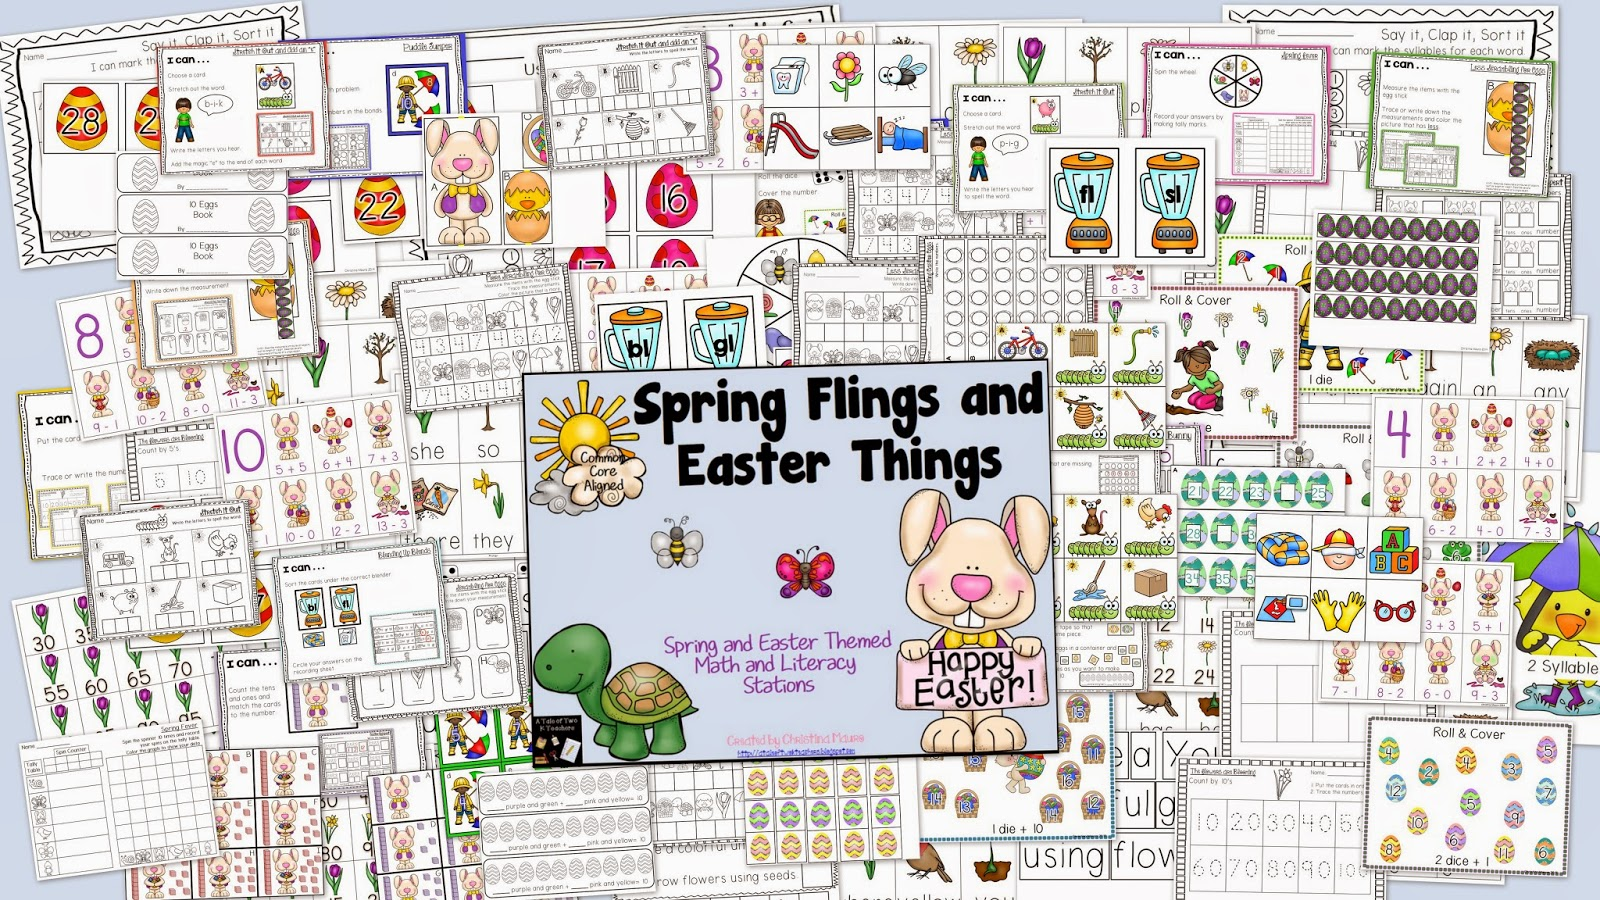 http://www.teacherspayteachers.com/Product/Spring-Flings-and-Easter-Things-1144430